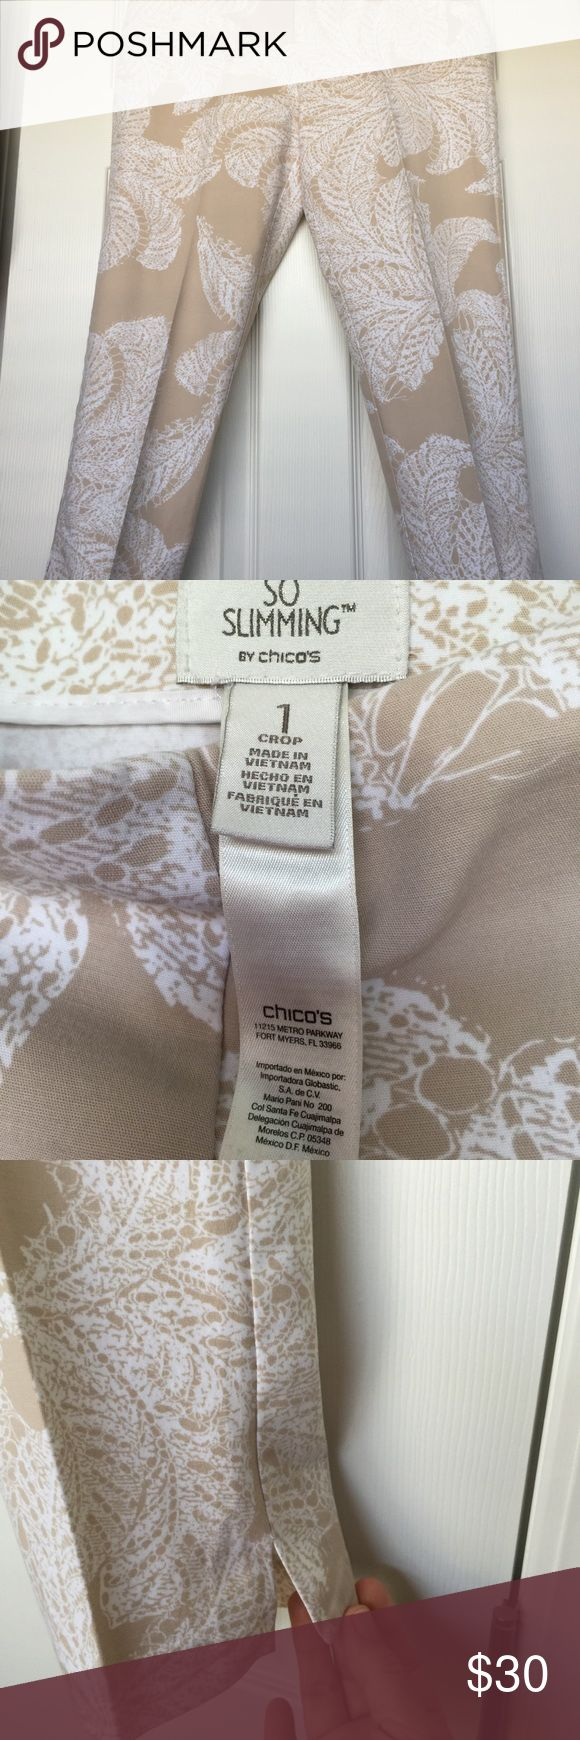 Chico's SoSlimming Nuetral Color Crop Pants size 1 These tan and white patterned Nuetral colored crop are the perfect three season pants.  Great for spring, summer and fall!  Side zipper makes tummy look flatter! Chico's Pants Ankle & Cropped